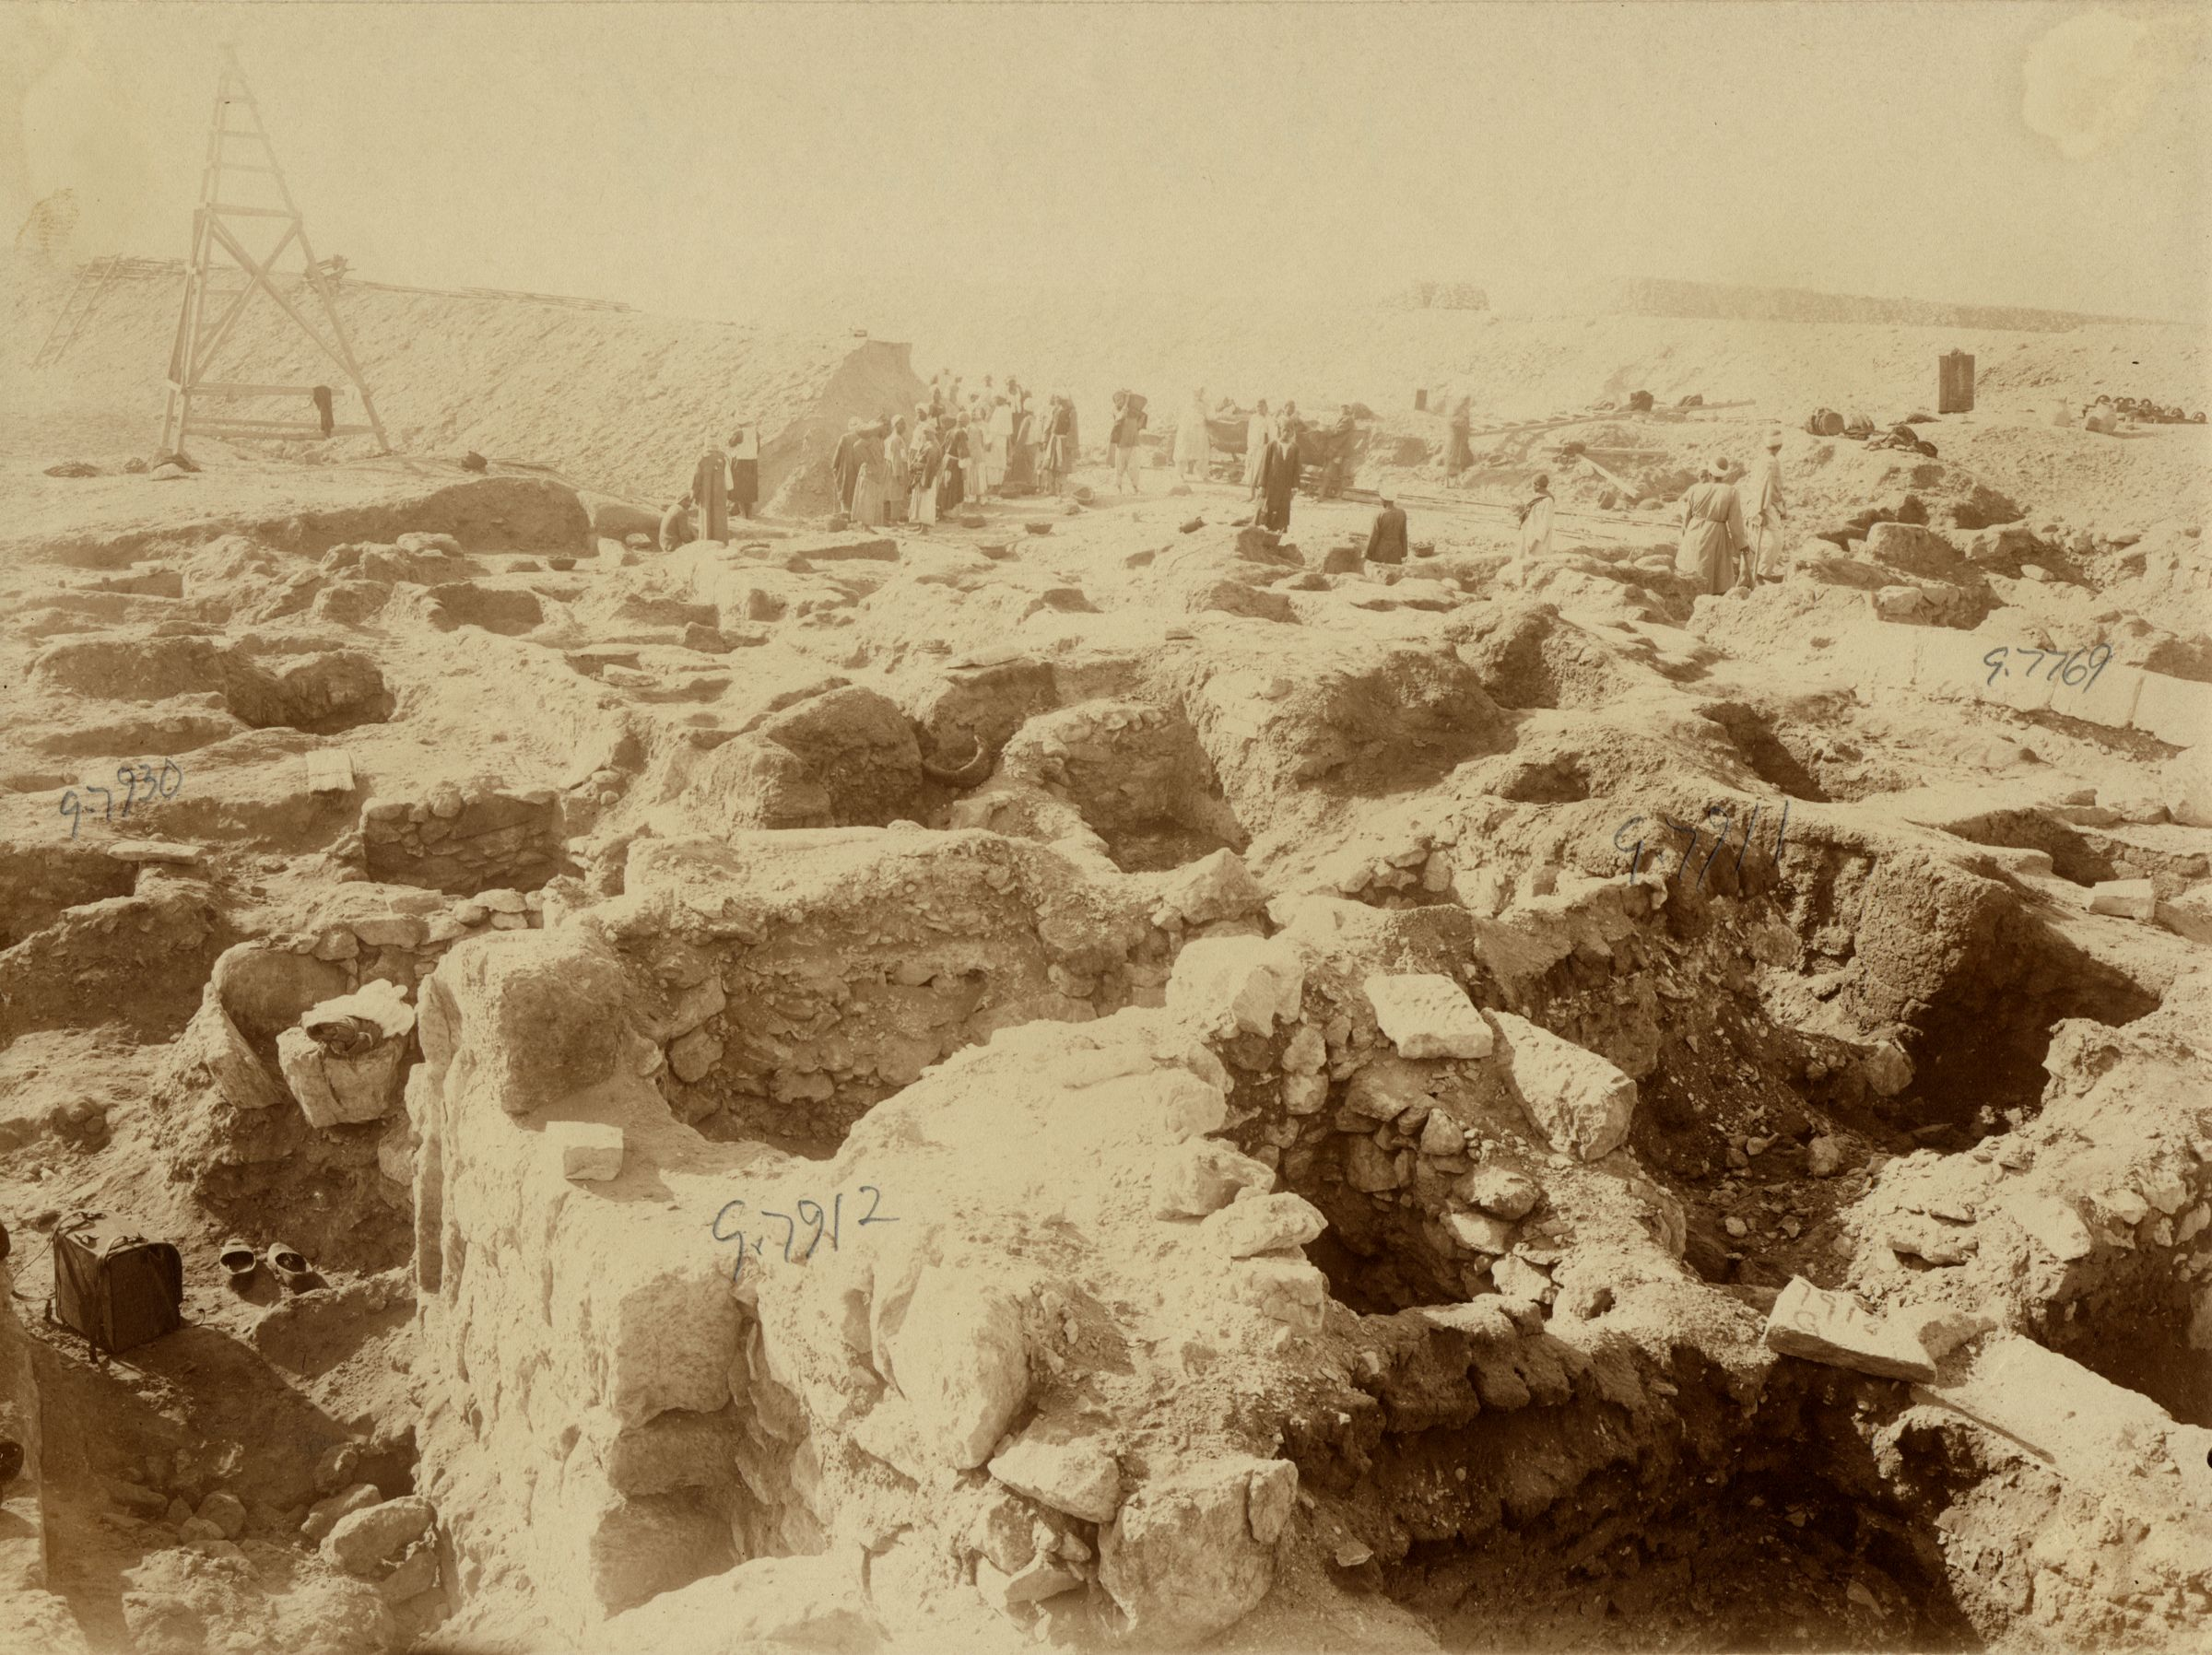 Eastern Cemetery: Site: Giza; View: G 7912, G 7930, G 7911, G 7769